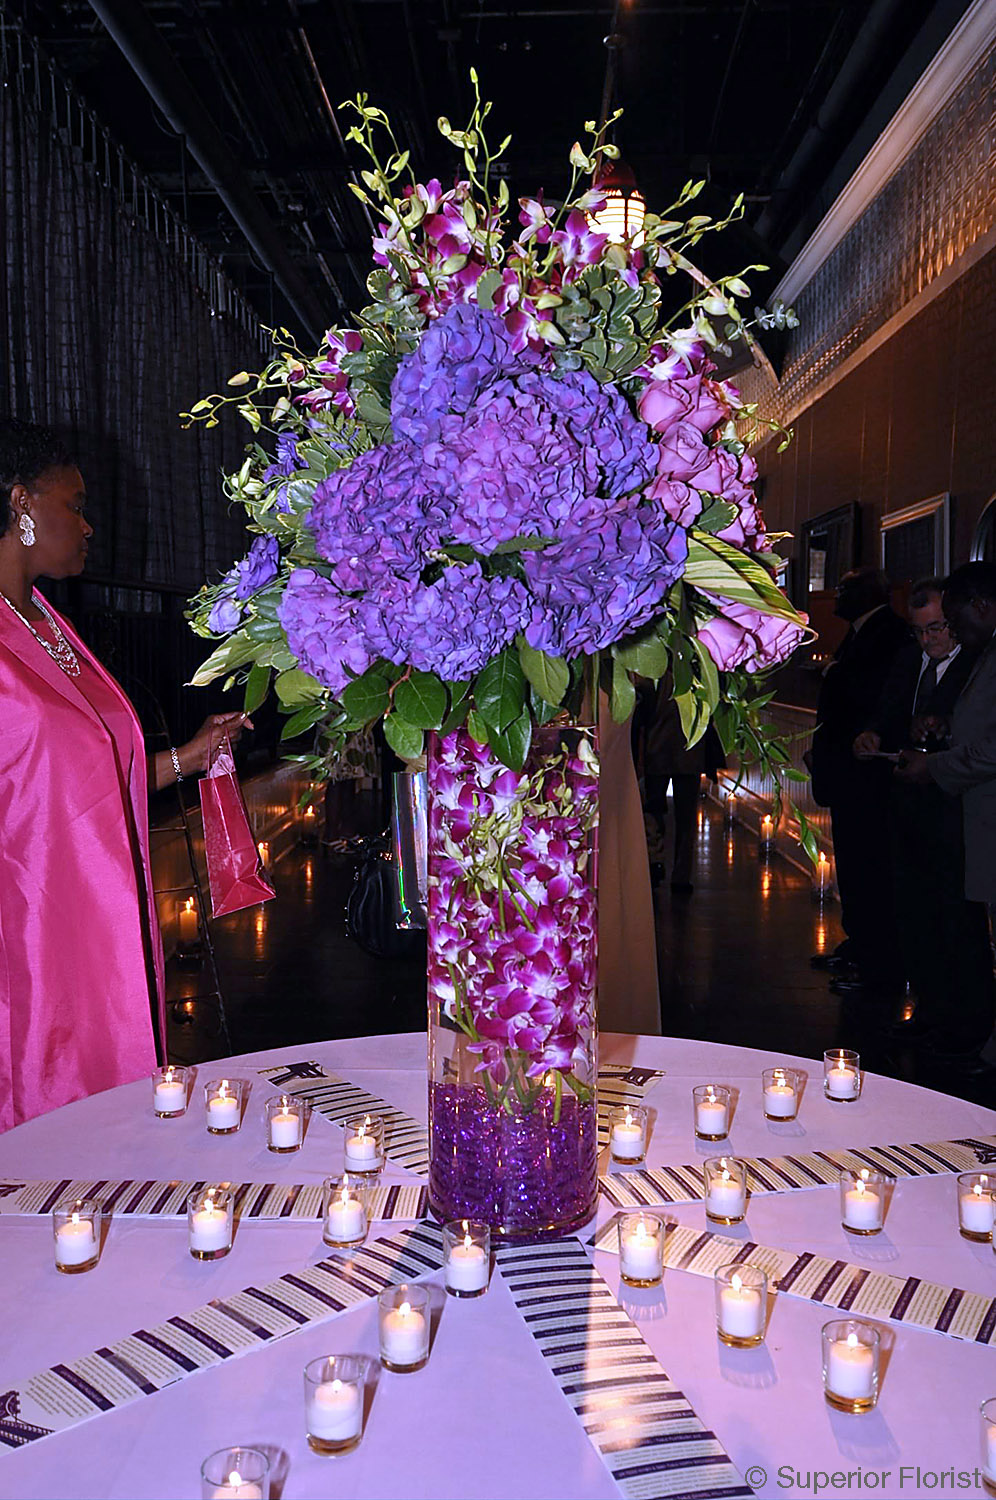 Superior Florist – Weddings – Escort Tables: Submerged, variegated Dendrobium orchids. Entire arrangement composed of quadrants of flowers (purple Hydrangeas in front, purple roses on right side, purple Lisianthus on left side, variegated Dendrobiums in rear). Vase: Tall, glass cylinder with purple gems at base.